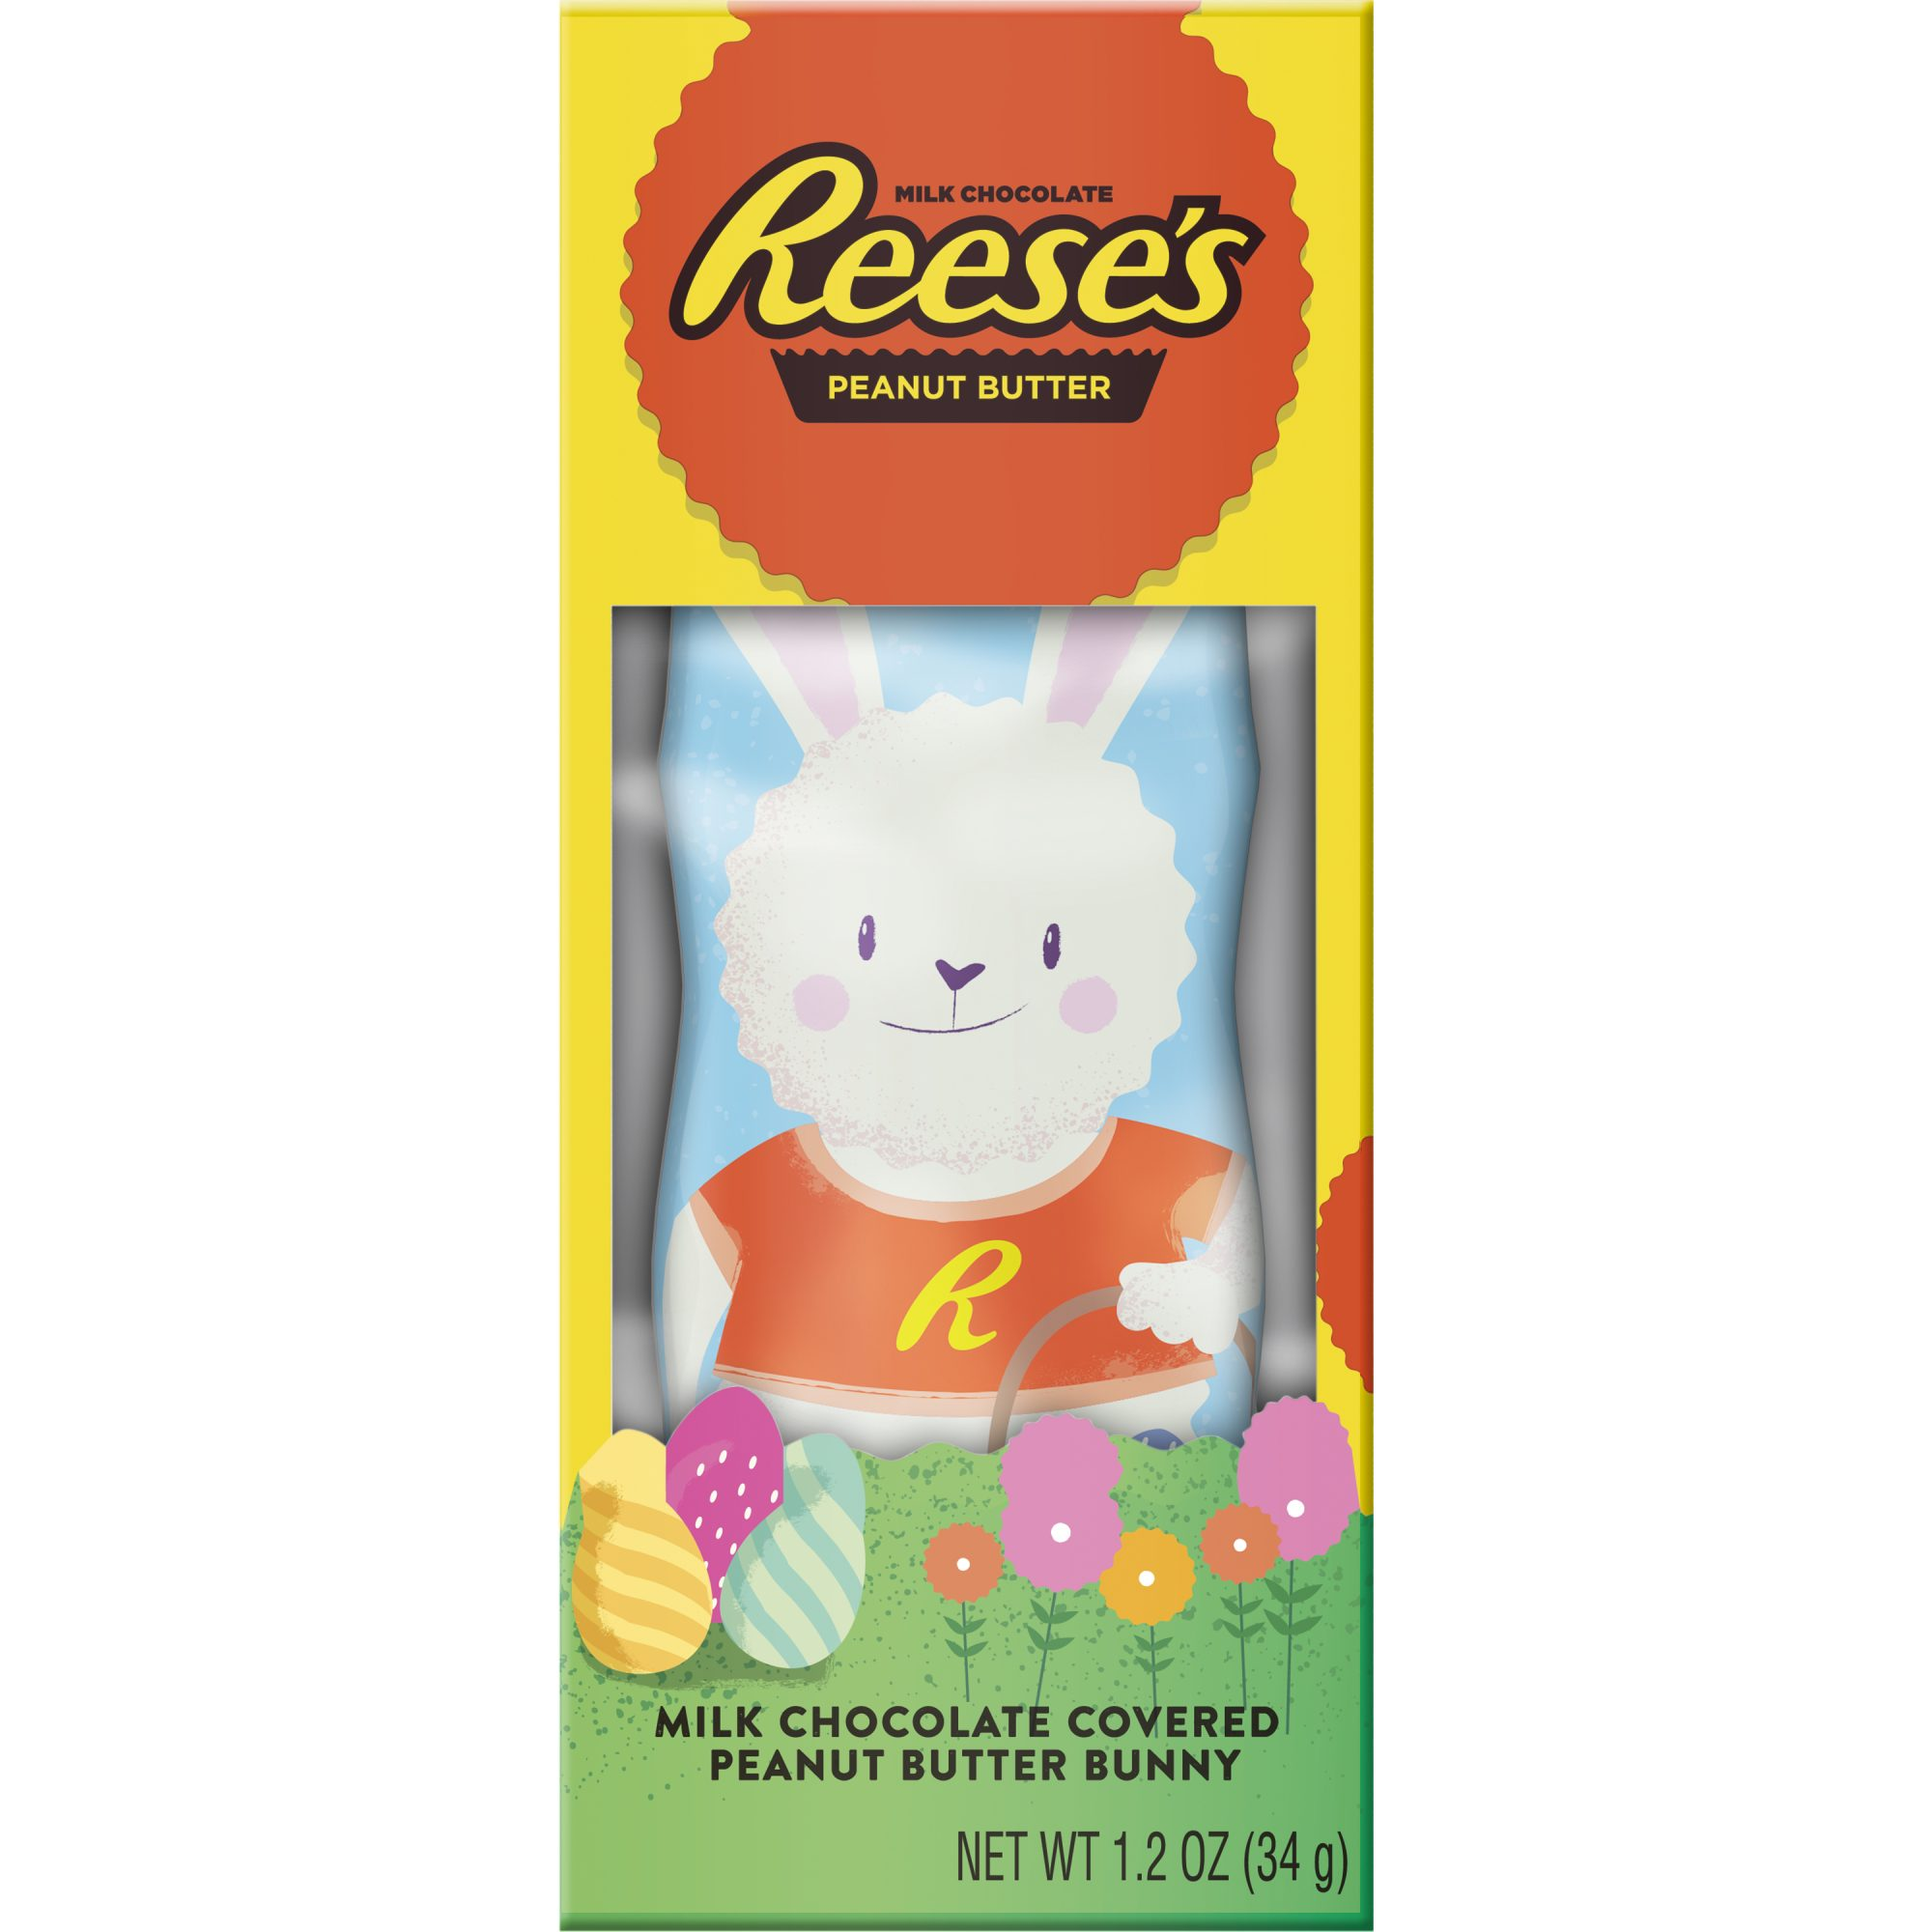 ReeseE28099s-Reester-Bunny-Peanut-Butter-Bunny.jpg